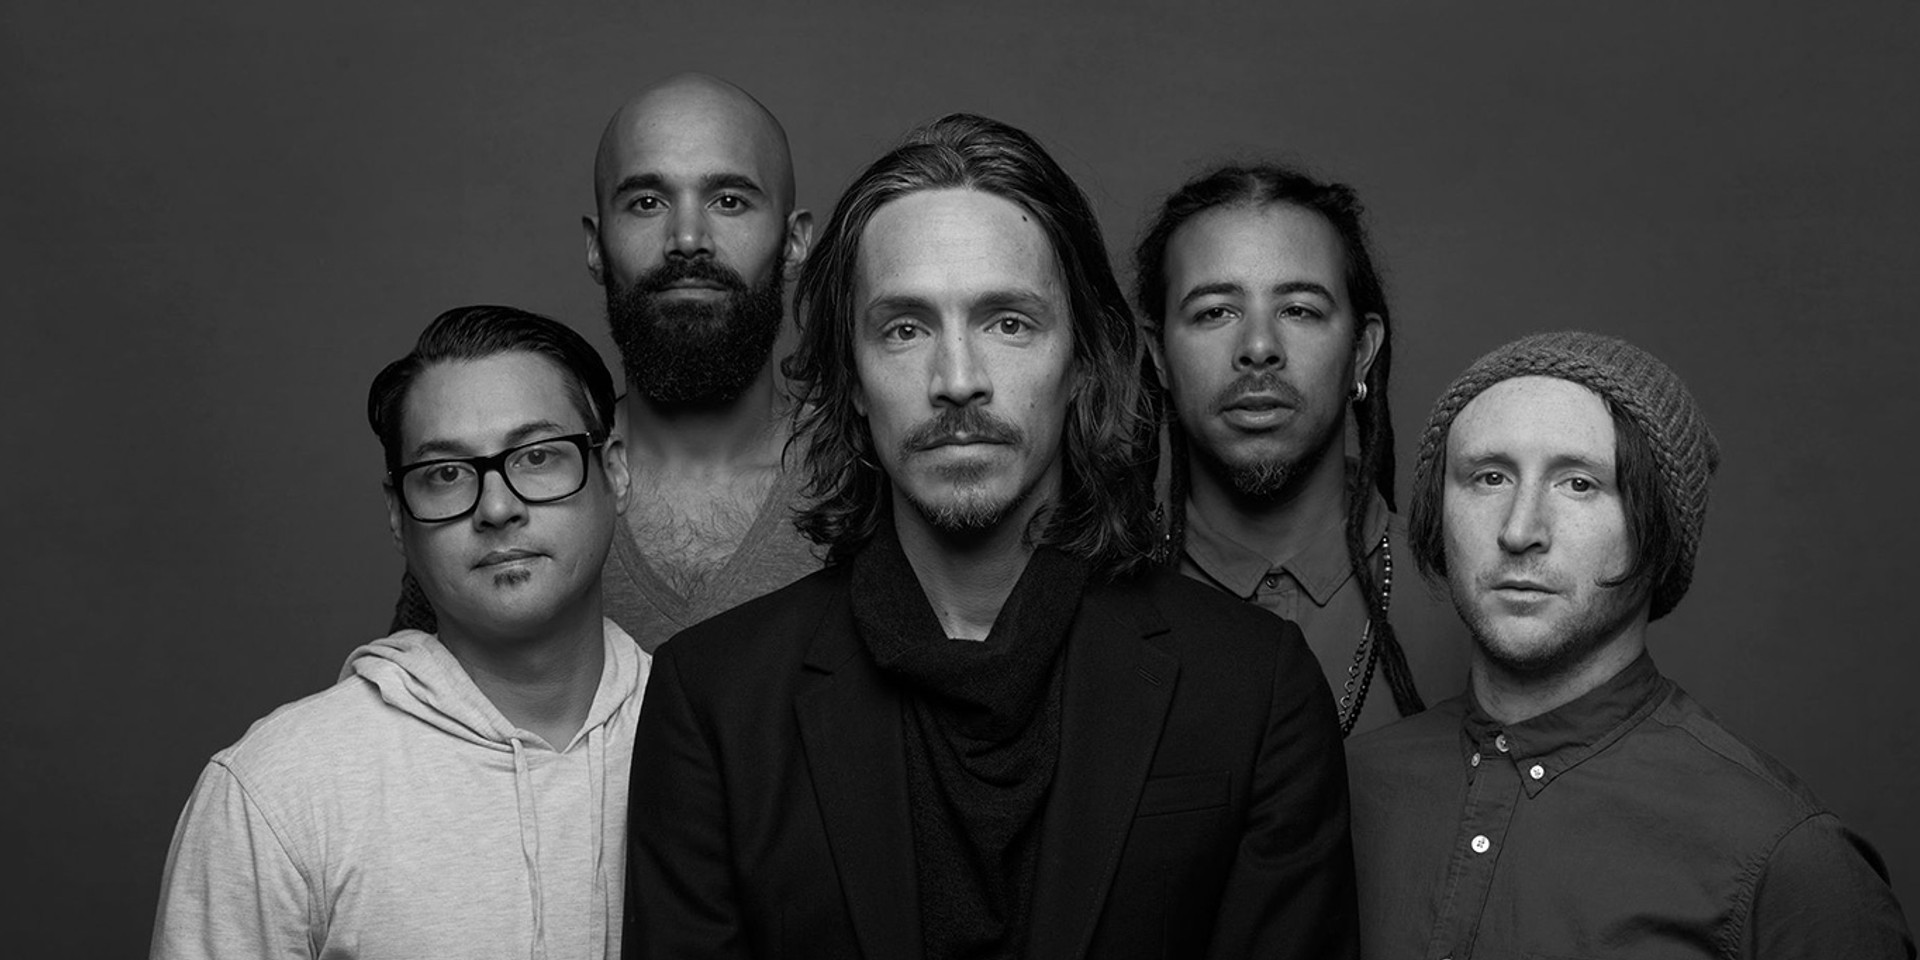 Incubus are returning to Singapore in 2018